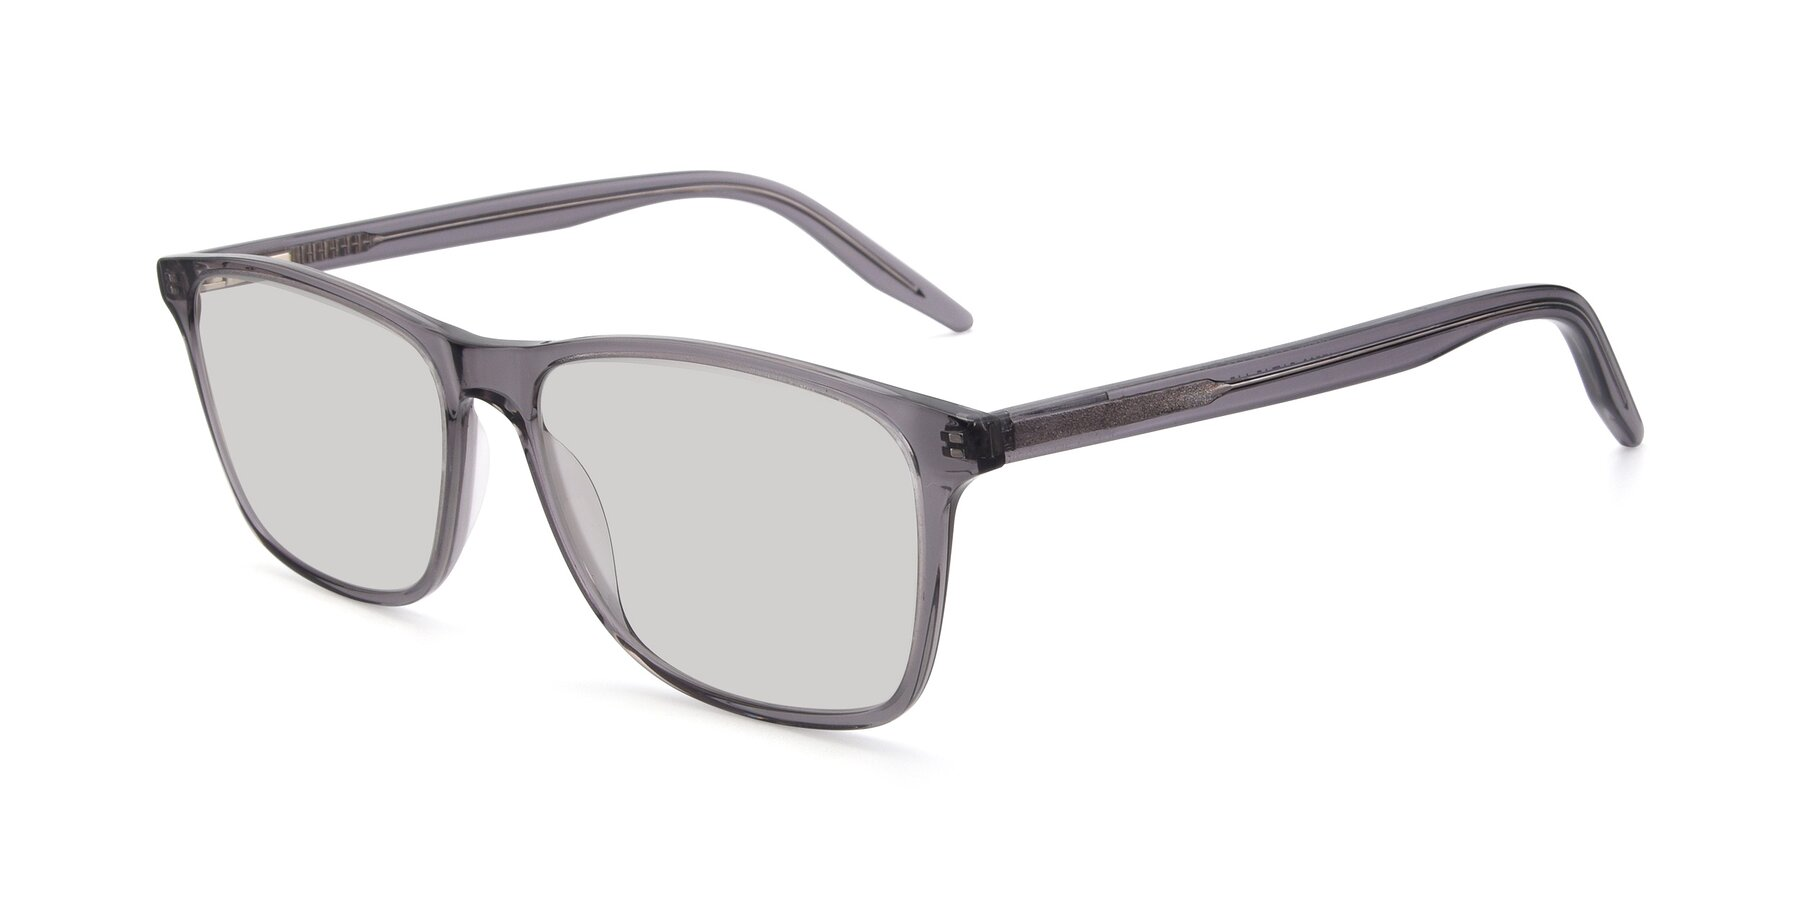 Angle of 17500 in Transparent Grey with Light Gray Tinted Lenses